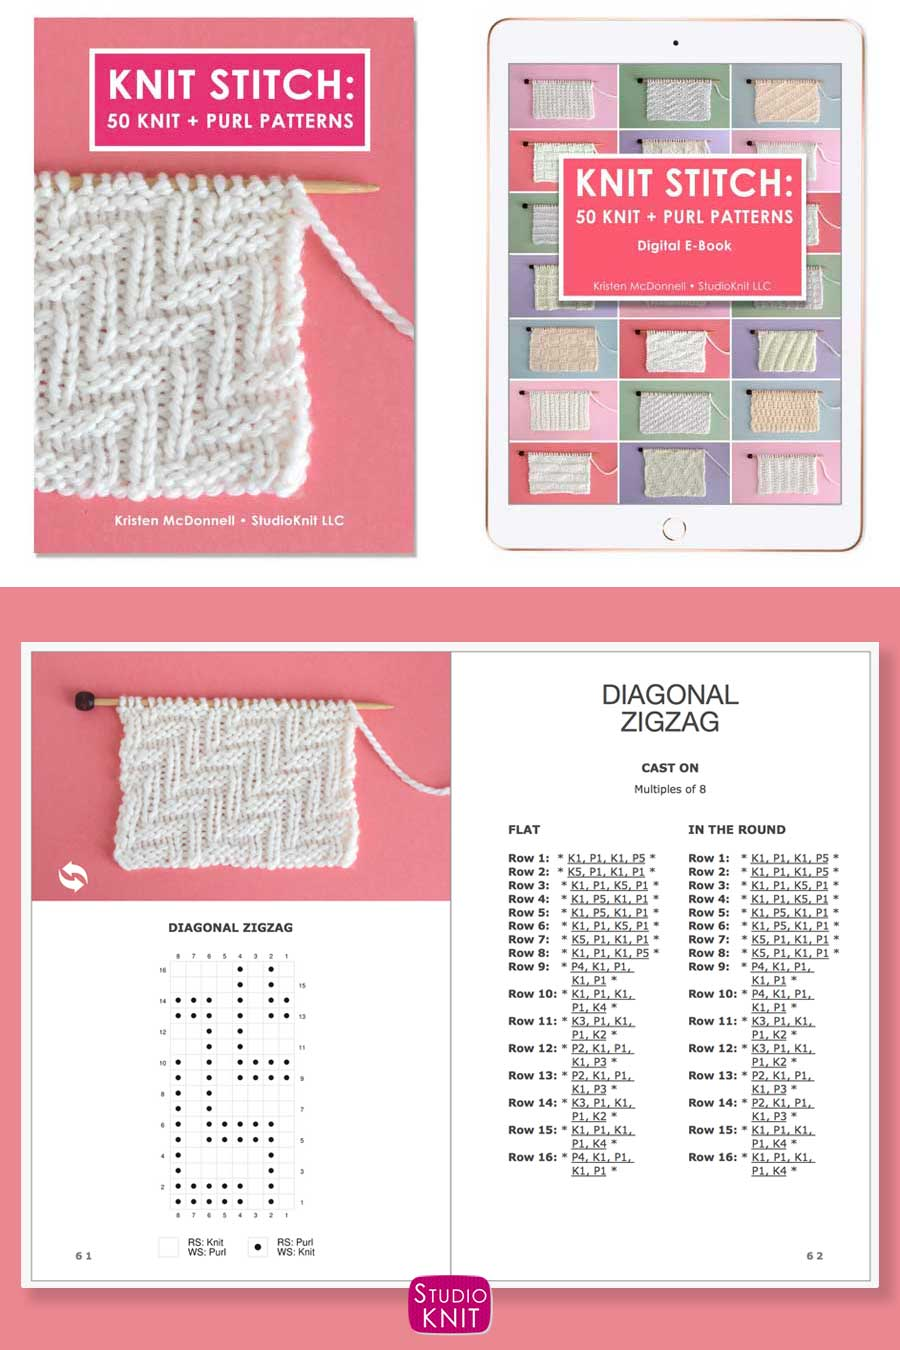 Knit Stitch Pattern Book with Diagonal Zigzag Stitch Pattern by Studio Knit